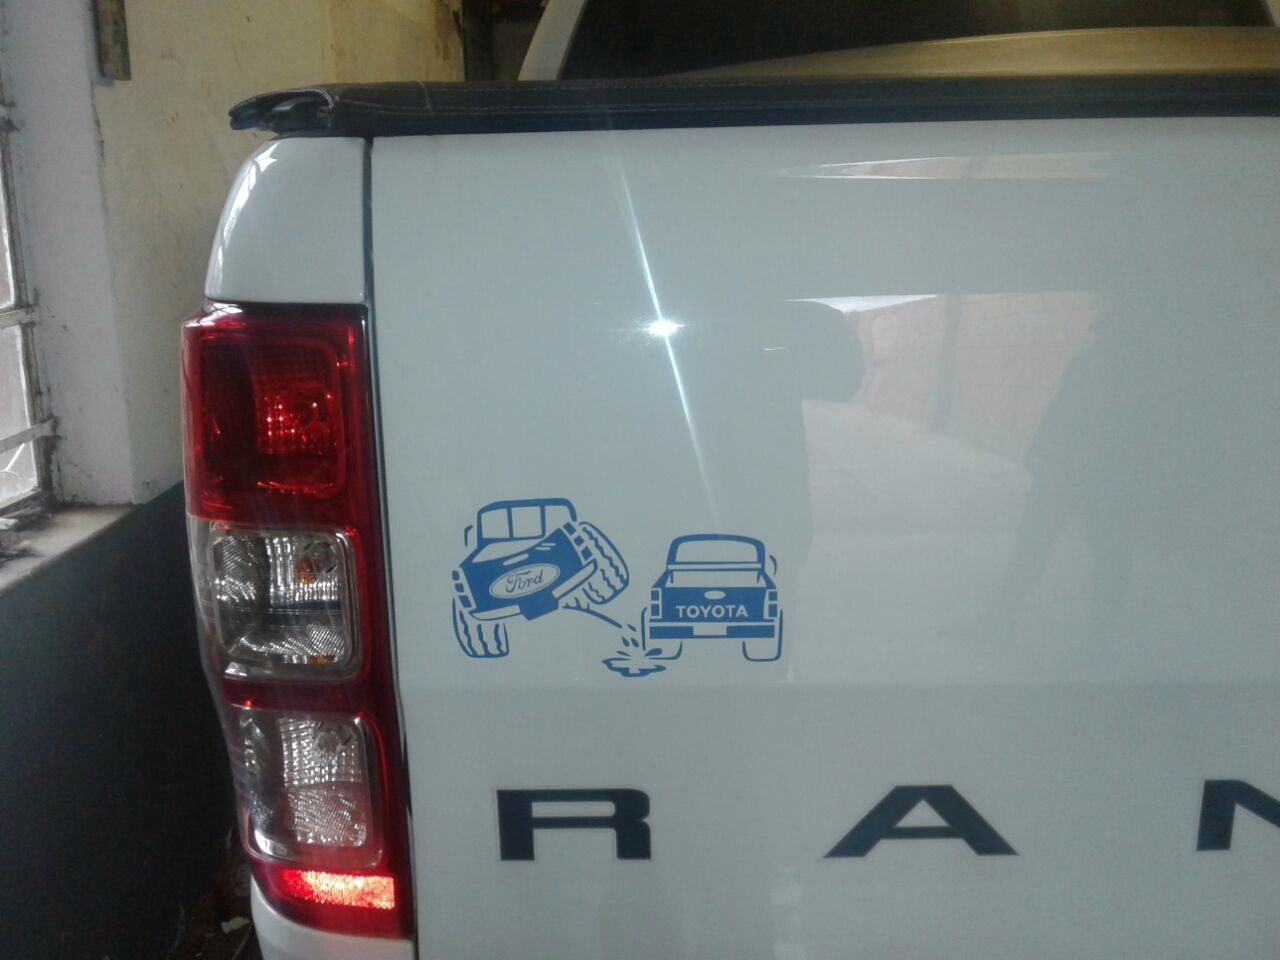 Ford Toyota Bumper Sticker Done By M Botha Designs Www Mbothadesigns Co Za Bumper Stickers Toyota Bumpers [ 960 x 1280 Pixel ]